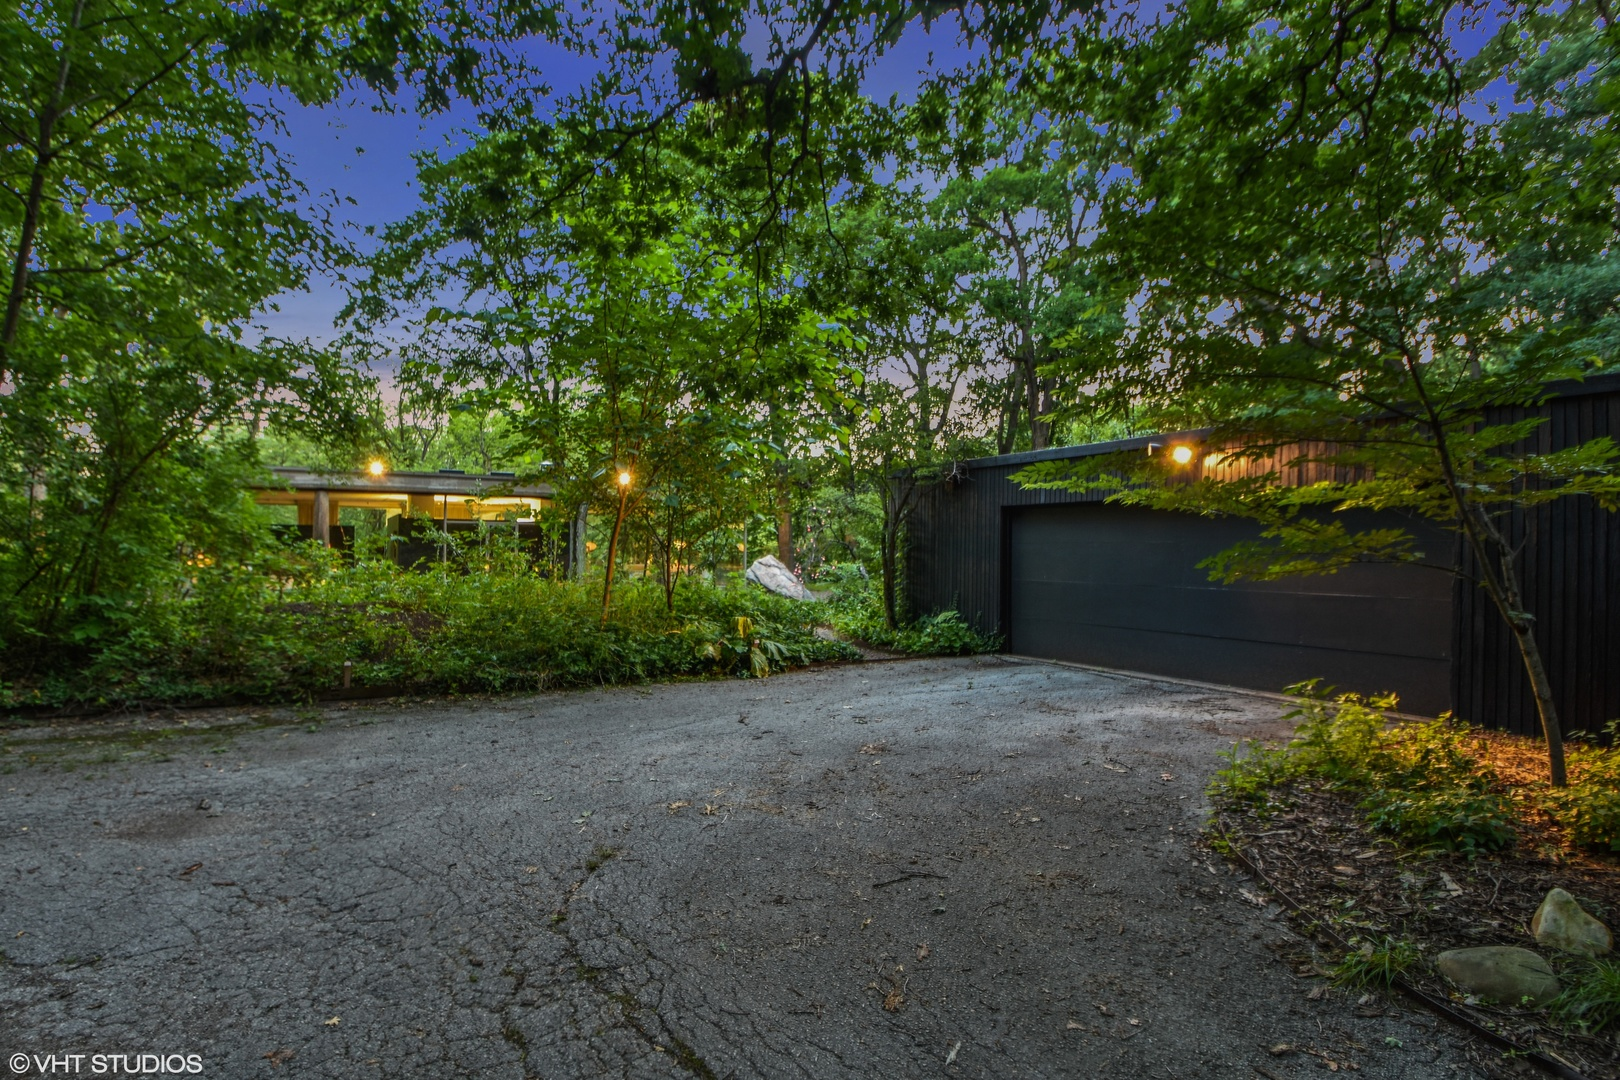 Call Lou Zucaro at 312.907.4085 or send an e-mail to lou@modernil.com to schedule a private showing today